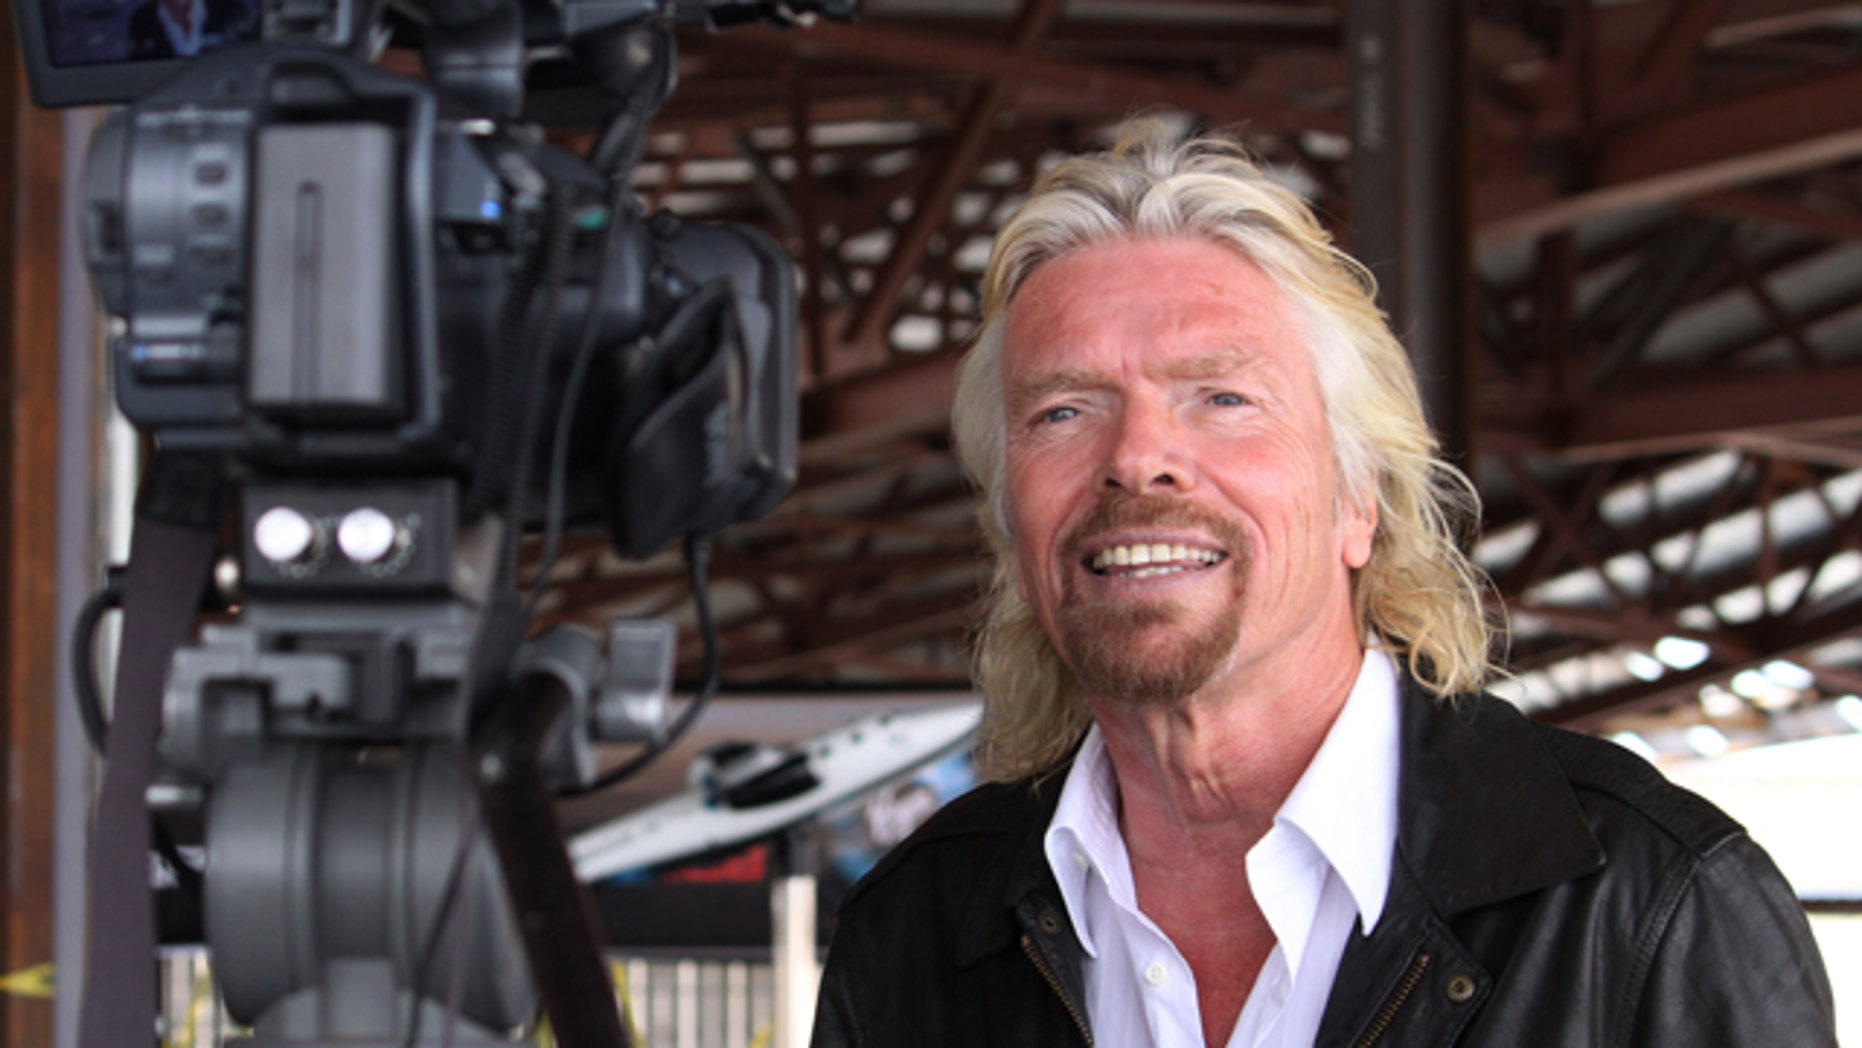 Virgin Galactic founder Richard Branson has vowed to be one of the first passengers when Virgin Galactic begins commercial space tourism flights from the spaceport.